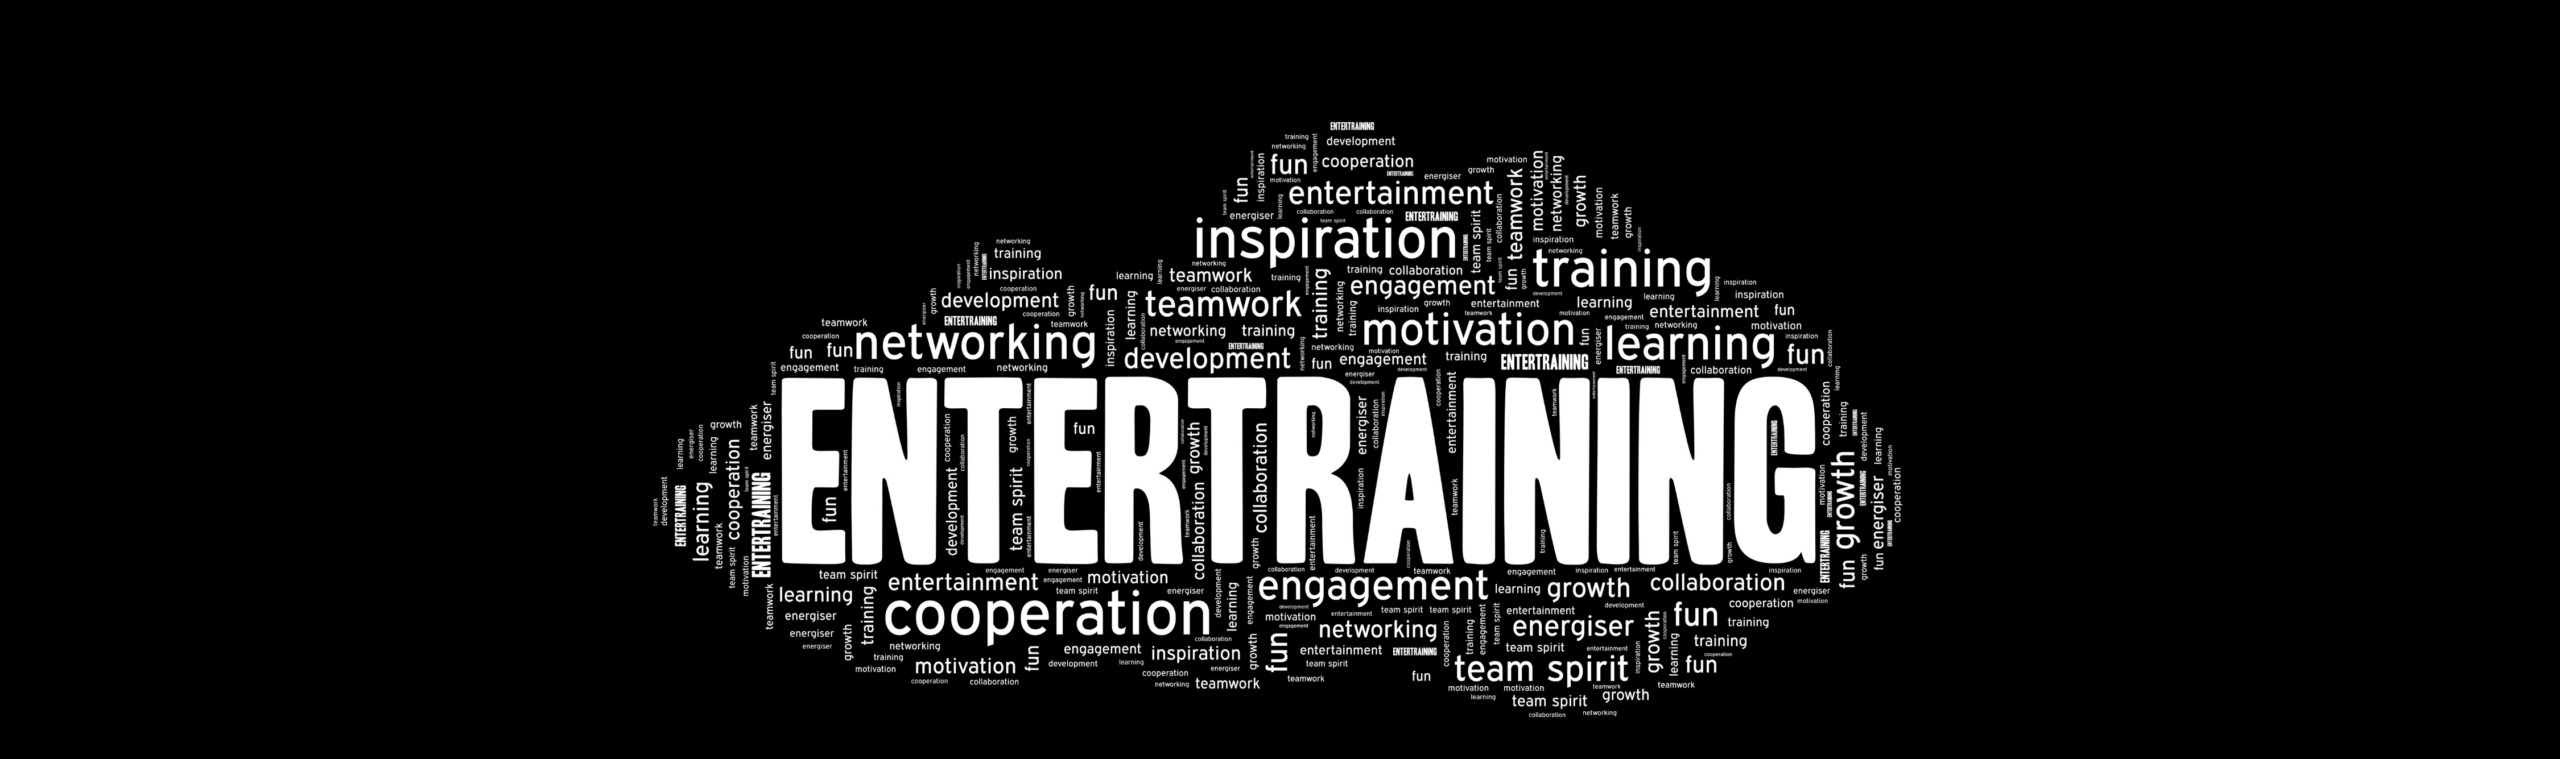 Page title: Entertraining Word Cloud